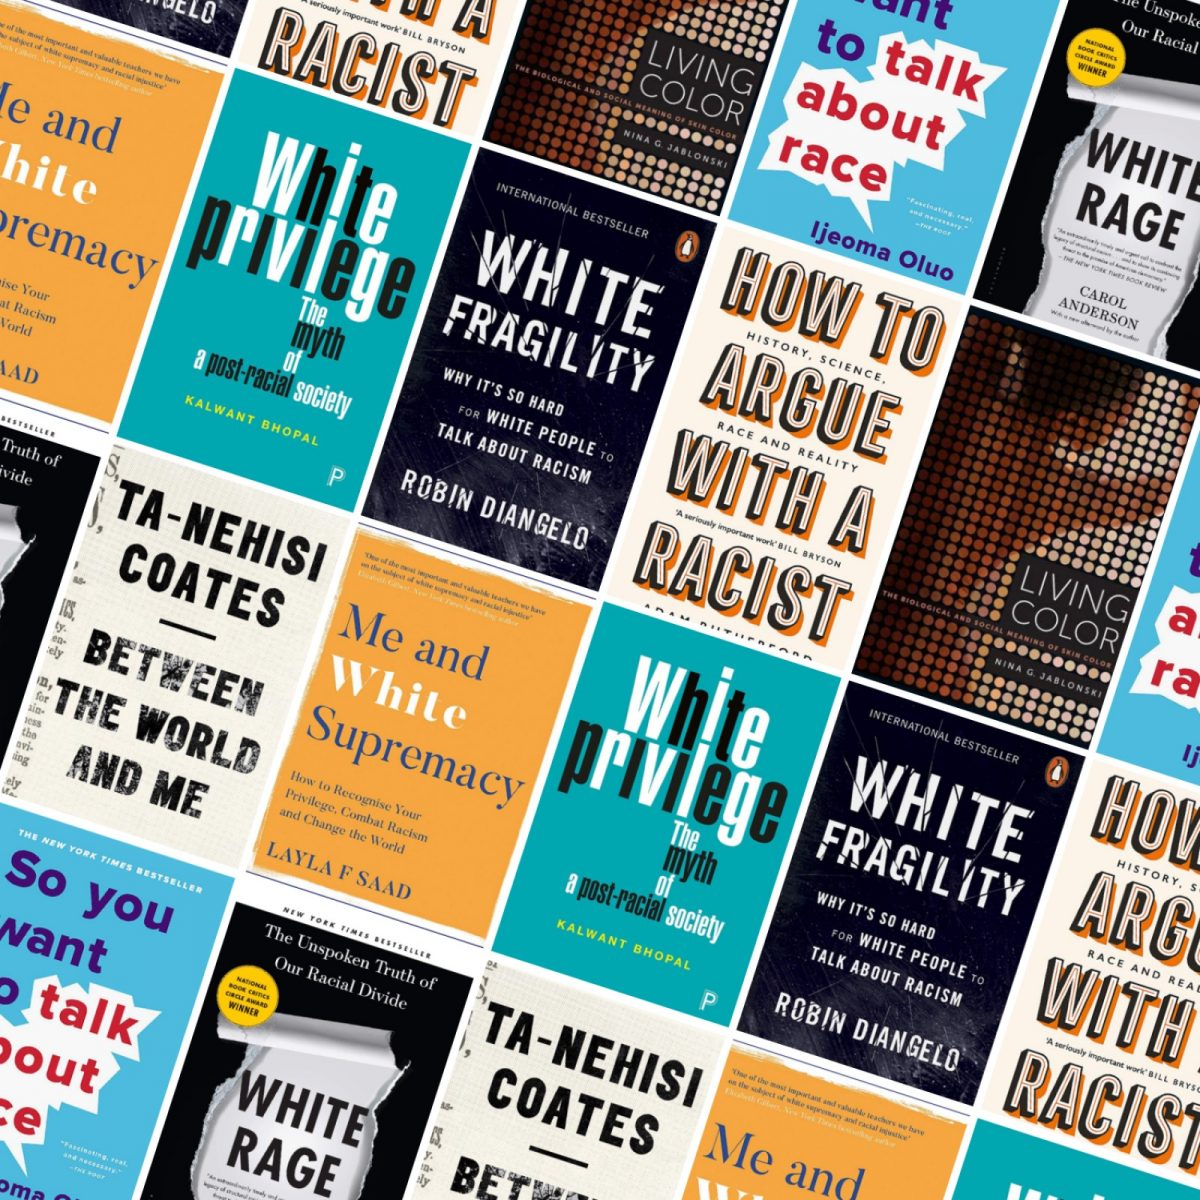 Books on Understanding Whiteness